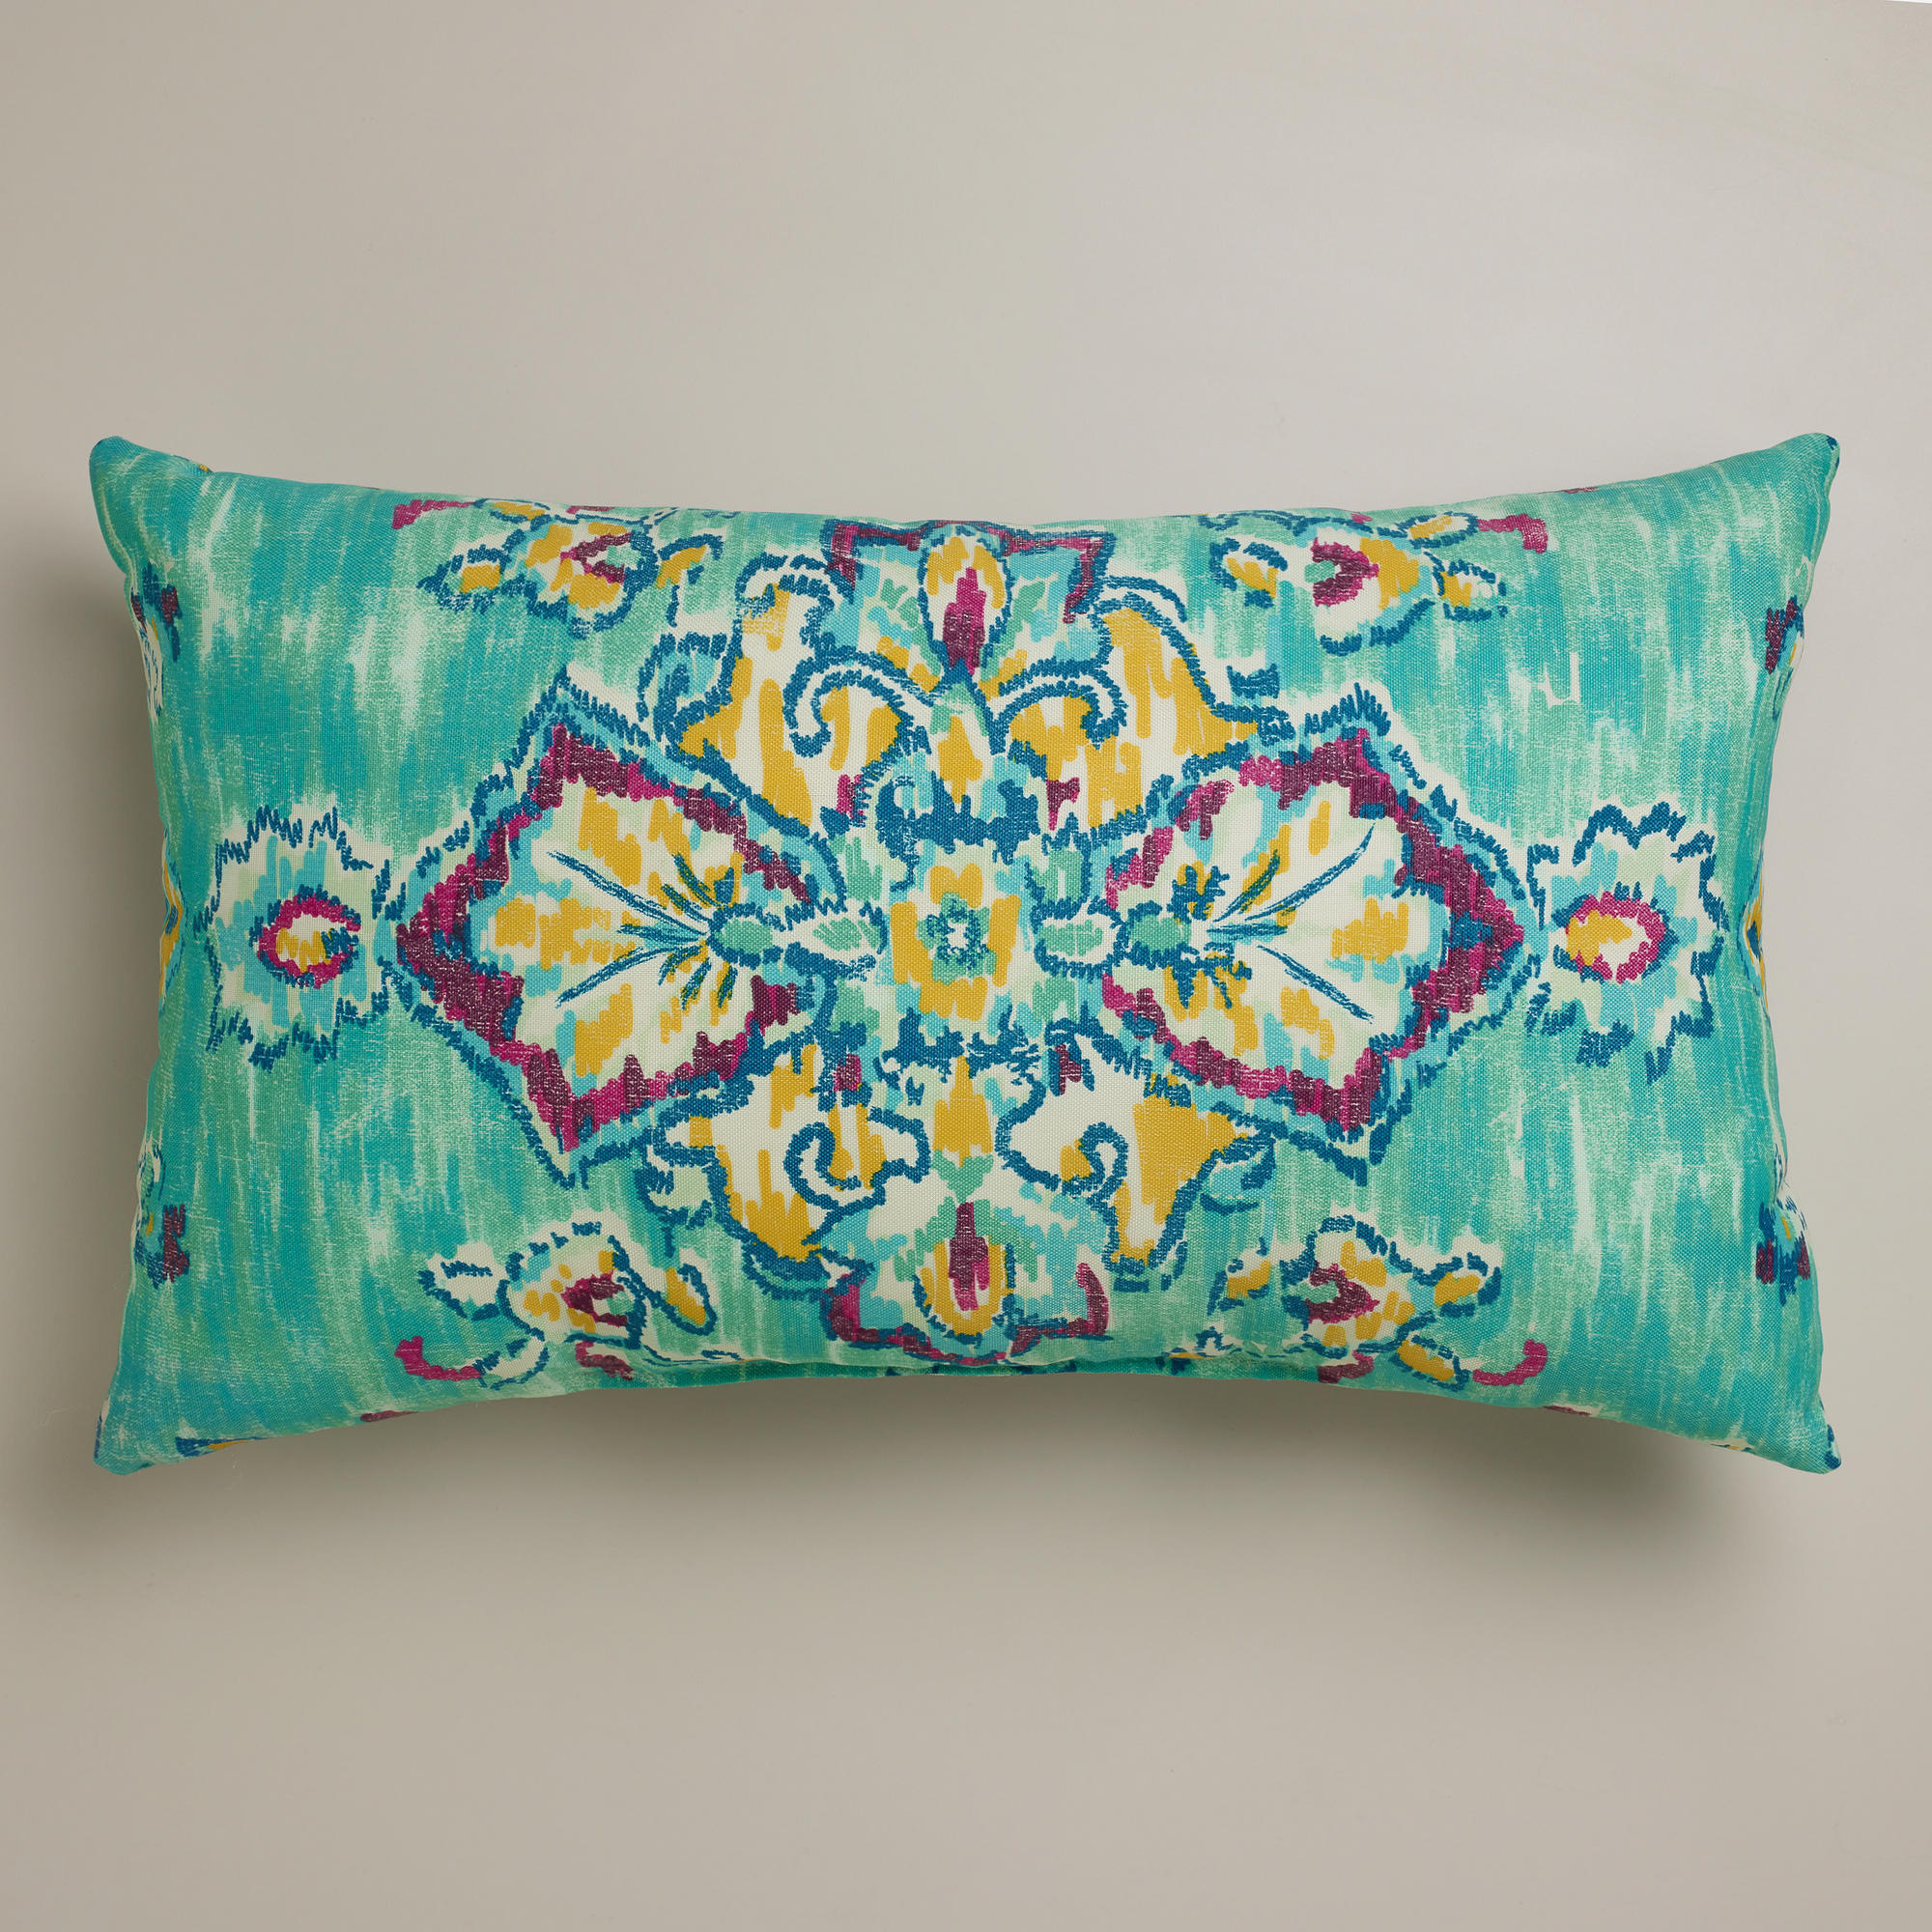 Lovable Blue Ethnic Target Outdoor Cushion Idea In Rectangle Shape With  Yellow And Purple Color Accent